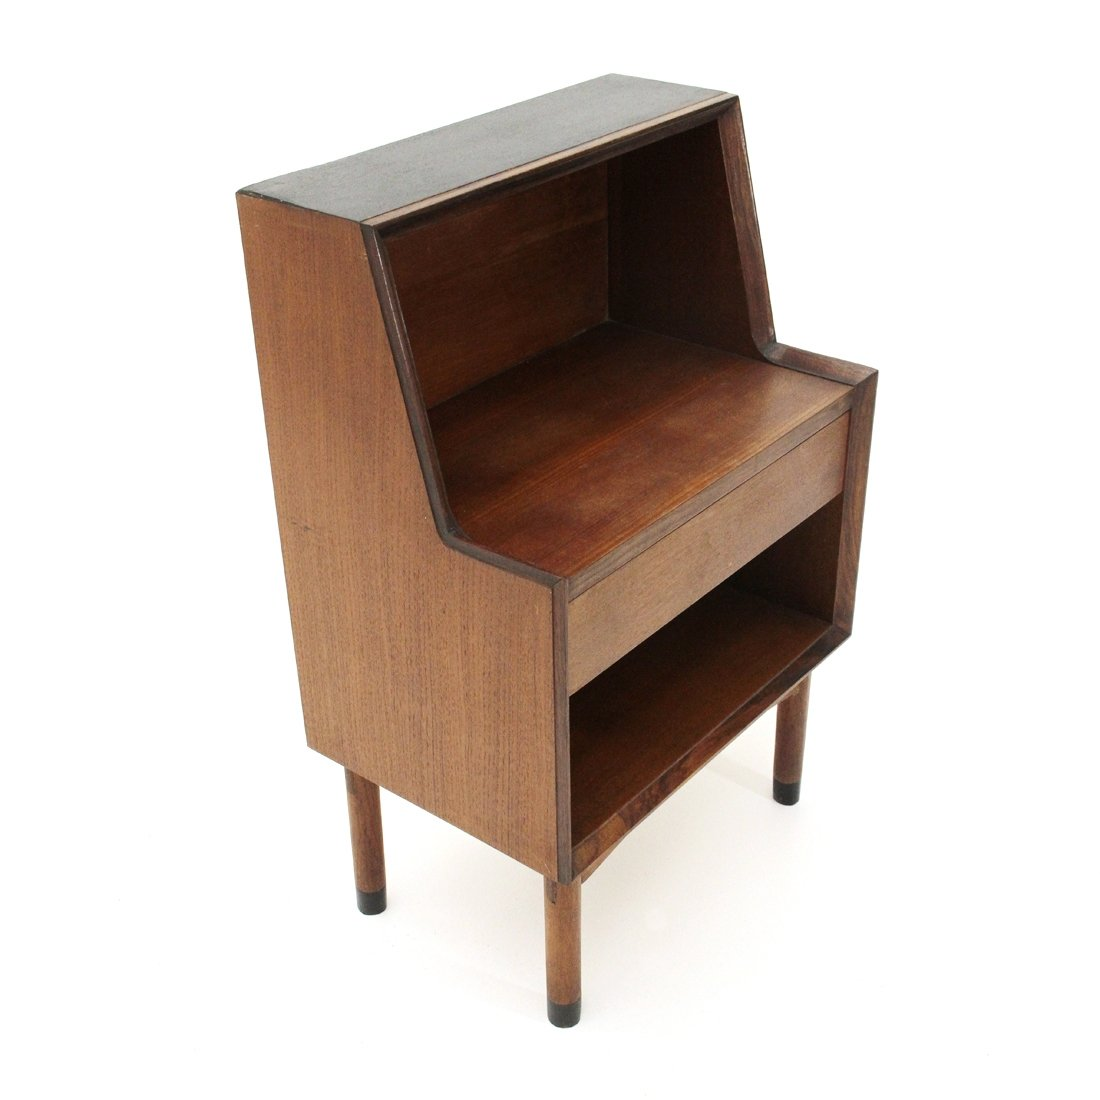 Picture of: Italian Mid Century Teak Bed Side Table 1960s 84179